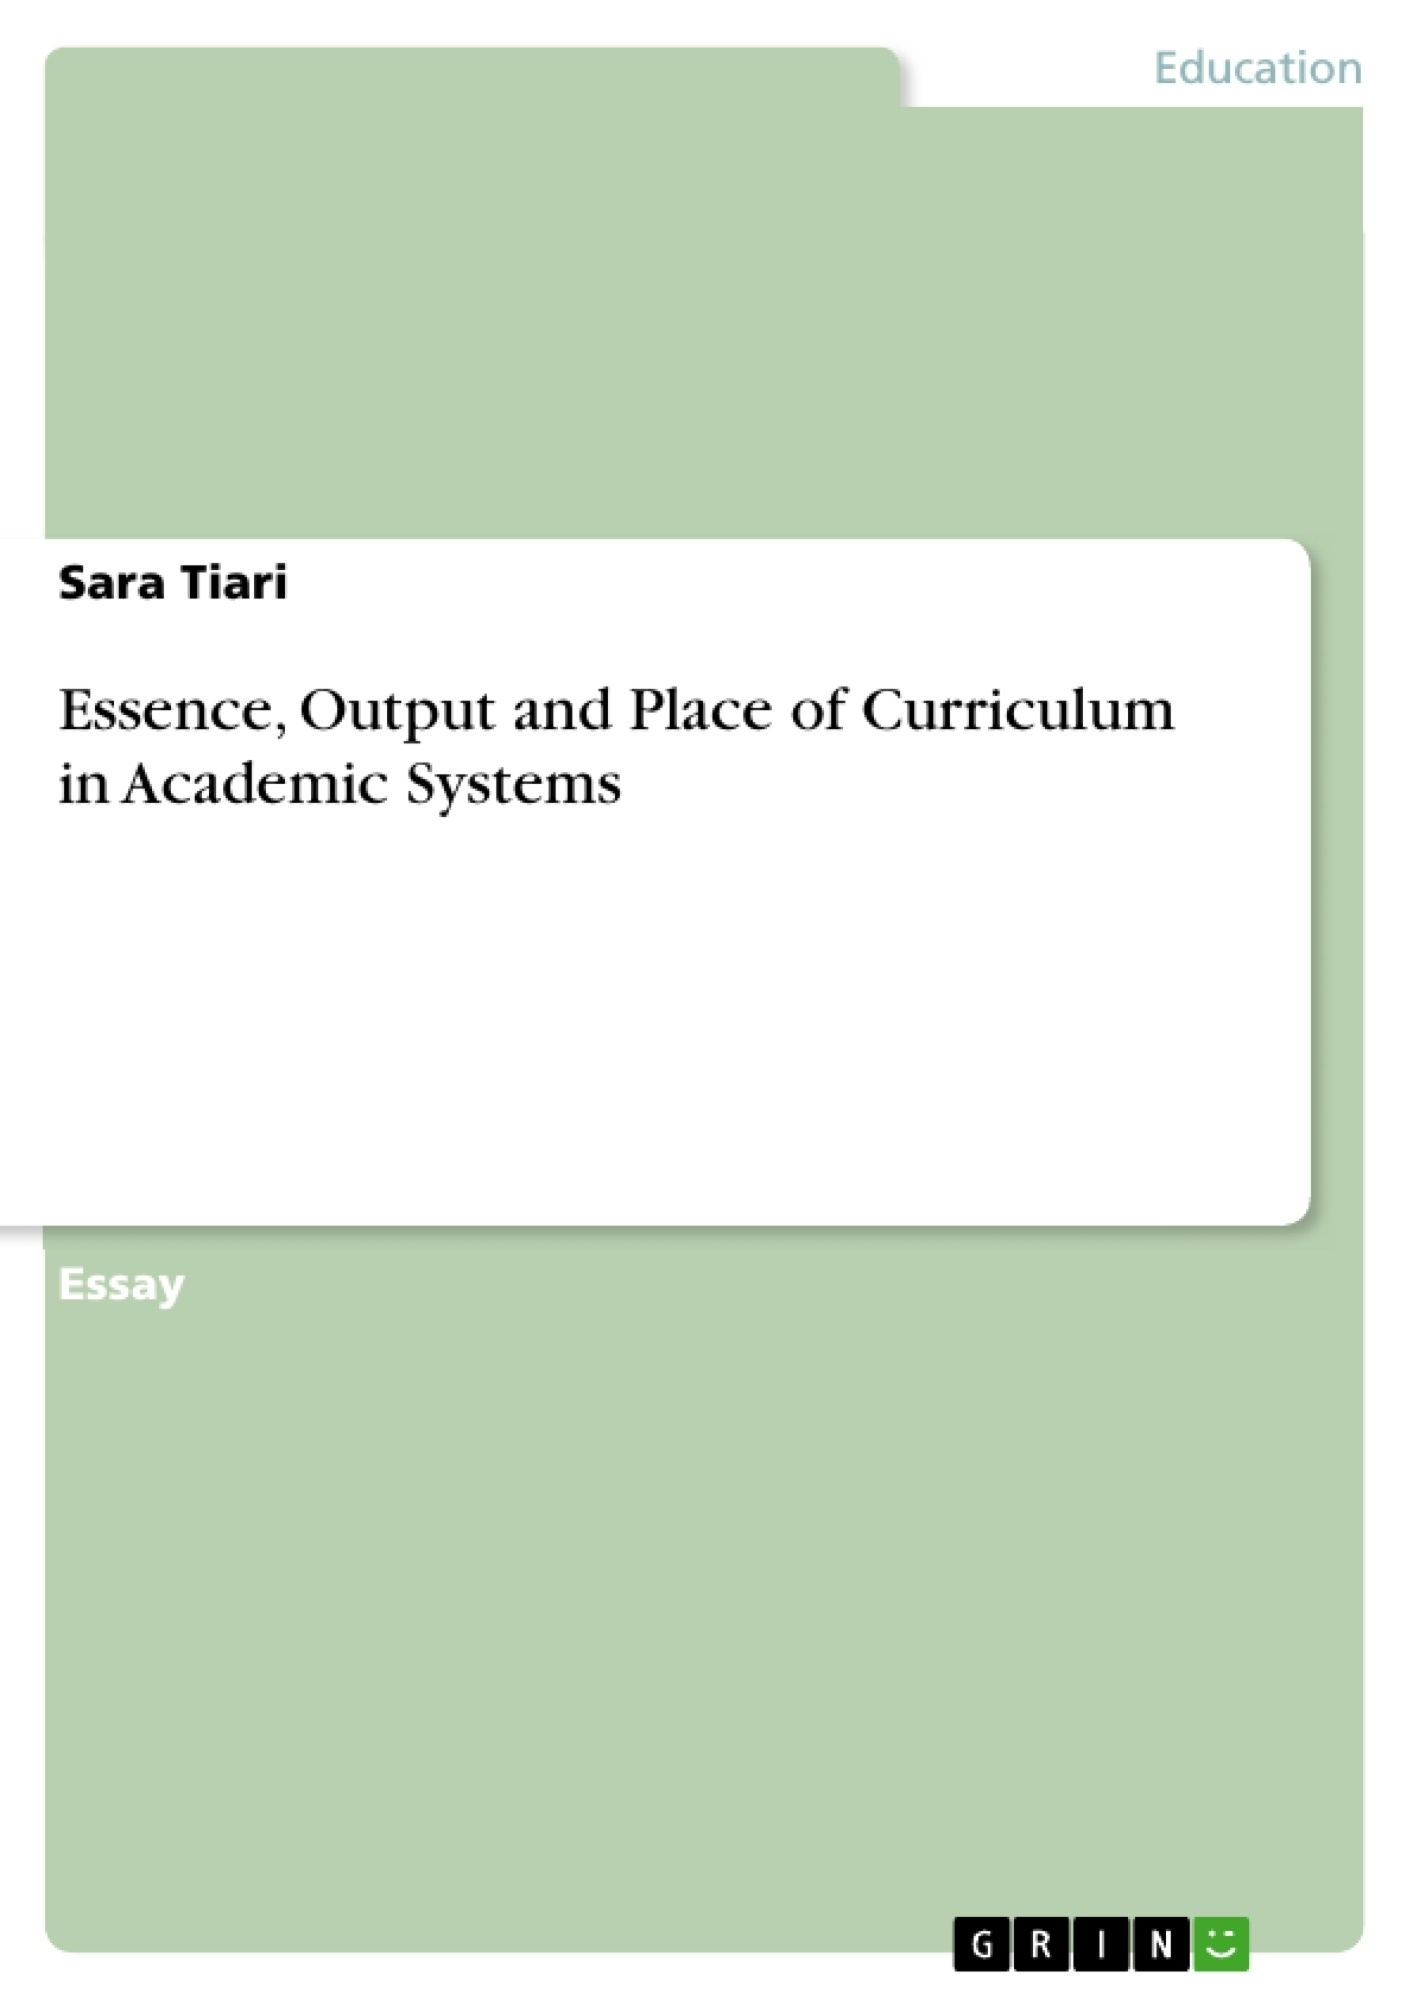 Title: Essence, Output and Place of Curriculum in Academic Systems